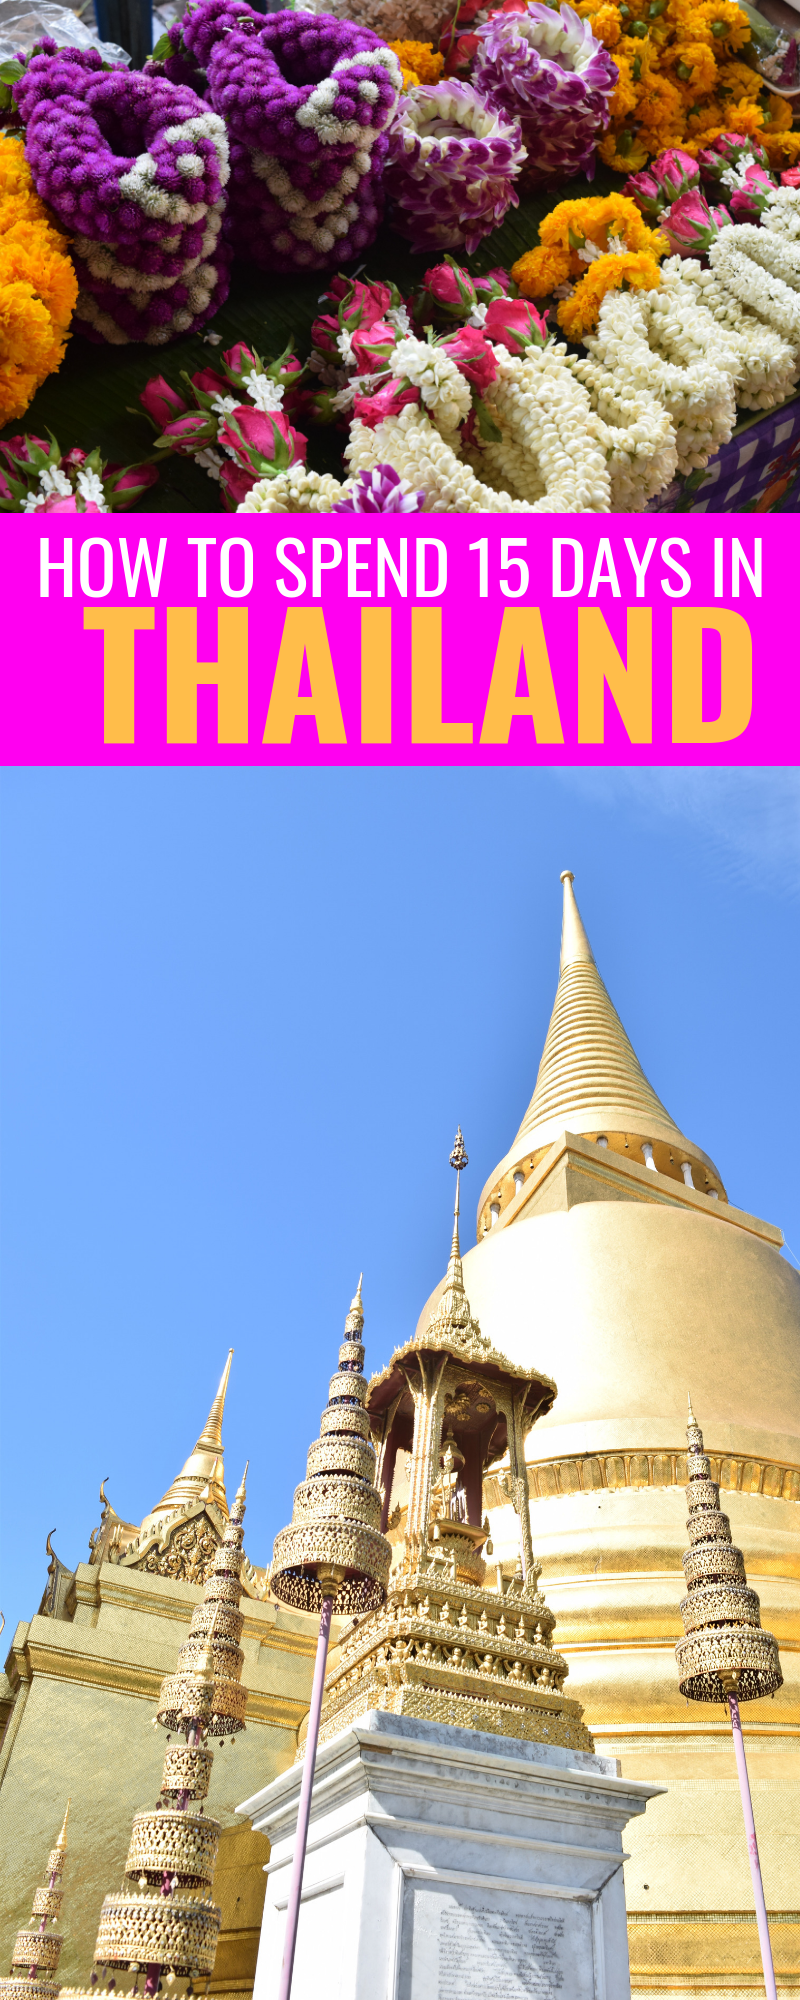 How To Spend 15 Days In Thailand - A complete itinerary for where we visited, where we stayed and sights to see! Thailand Travel - Chiangmai - Phuket - Koh Samui - Thailand Itinerary - How to visit Thailand on a budget - Thailand honeymoon - Where to go in Thailand #thailand #chiangmai #phuket #kohsamui #asia #travel